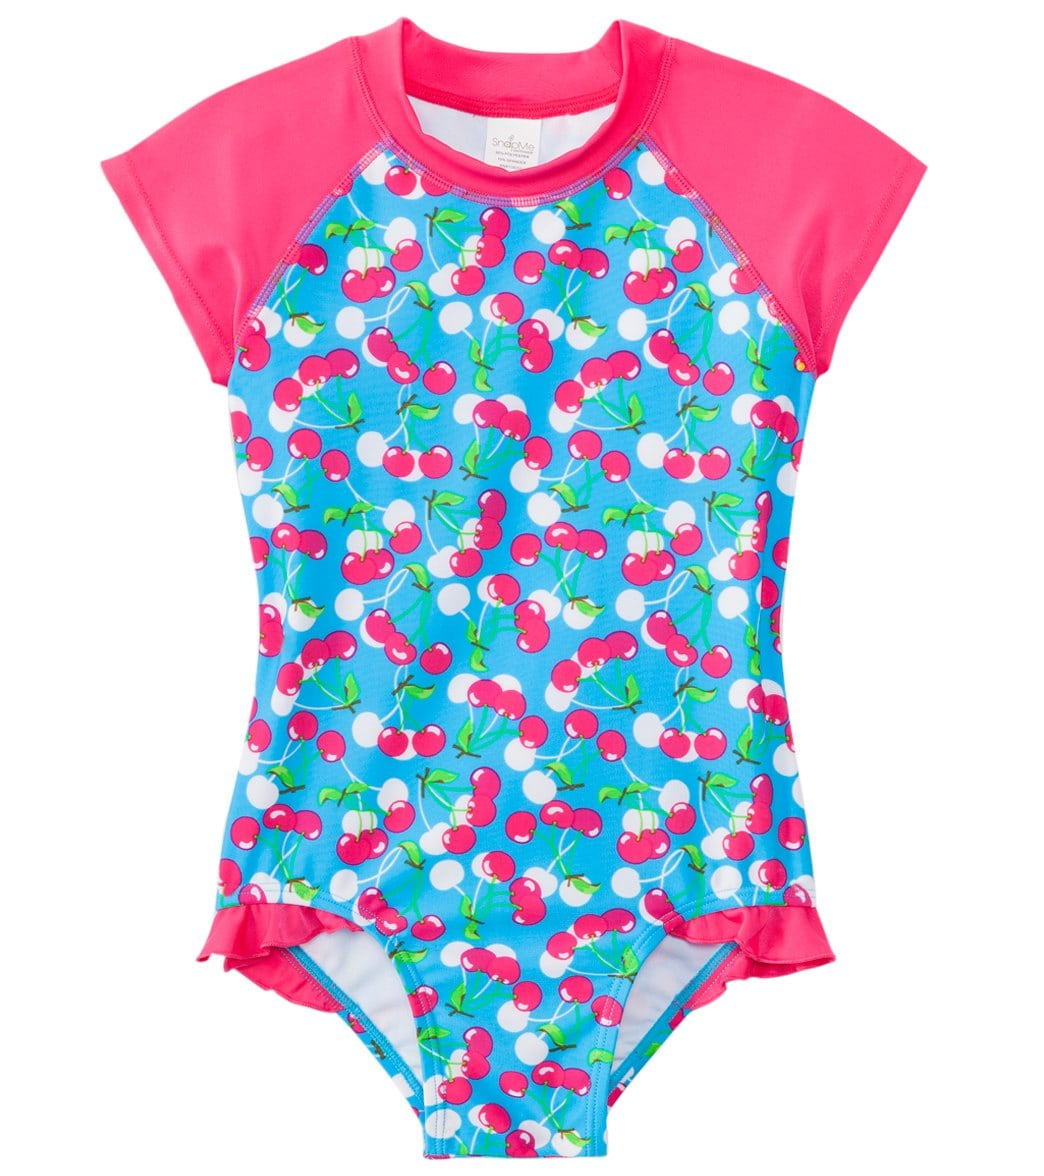 a7d6f9b0daf91 SnapMe Girls' Lucy Very Cherry Ruffle S/S Rash Guard One Piece Swimsuit UVP